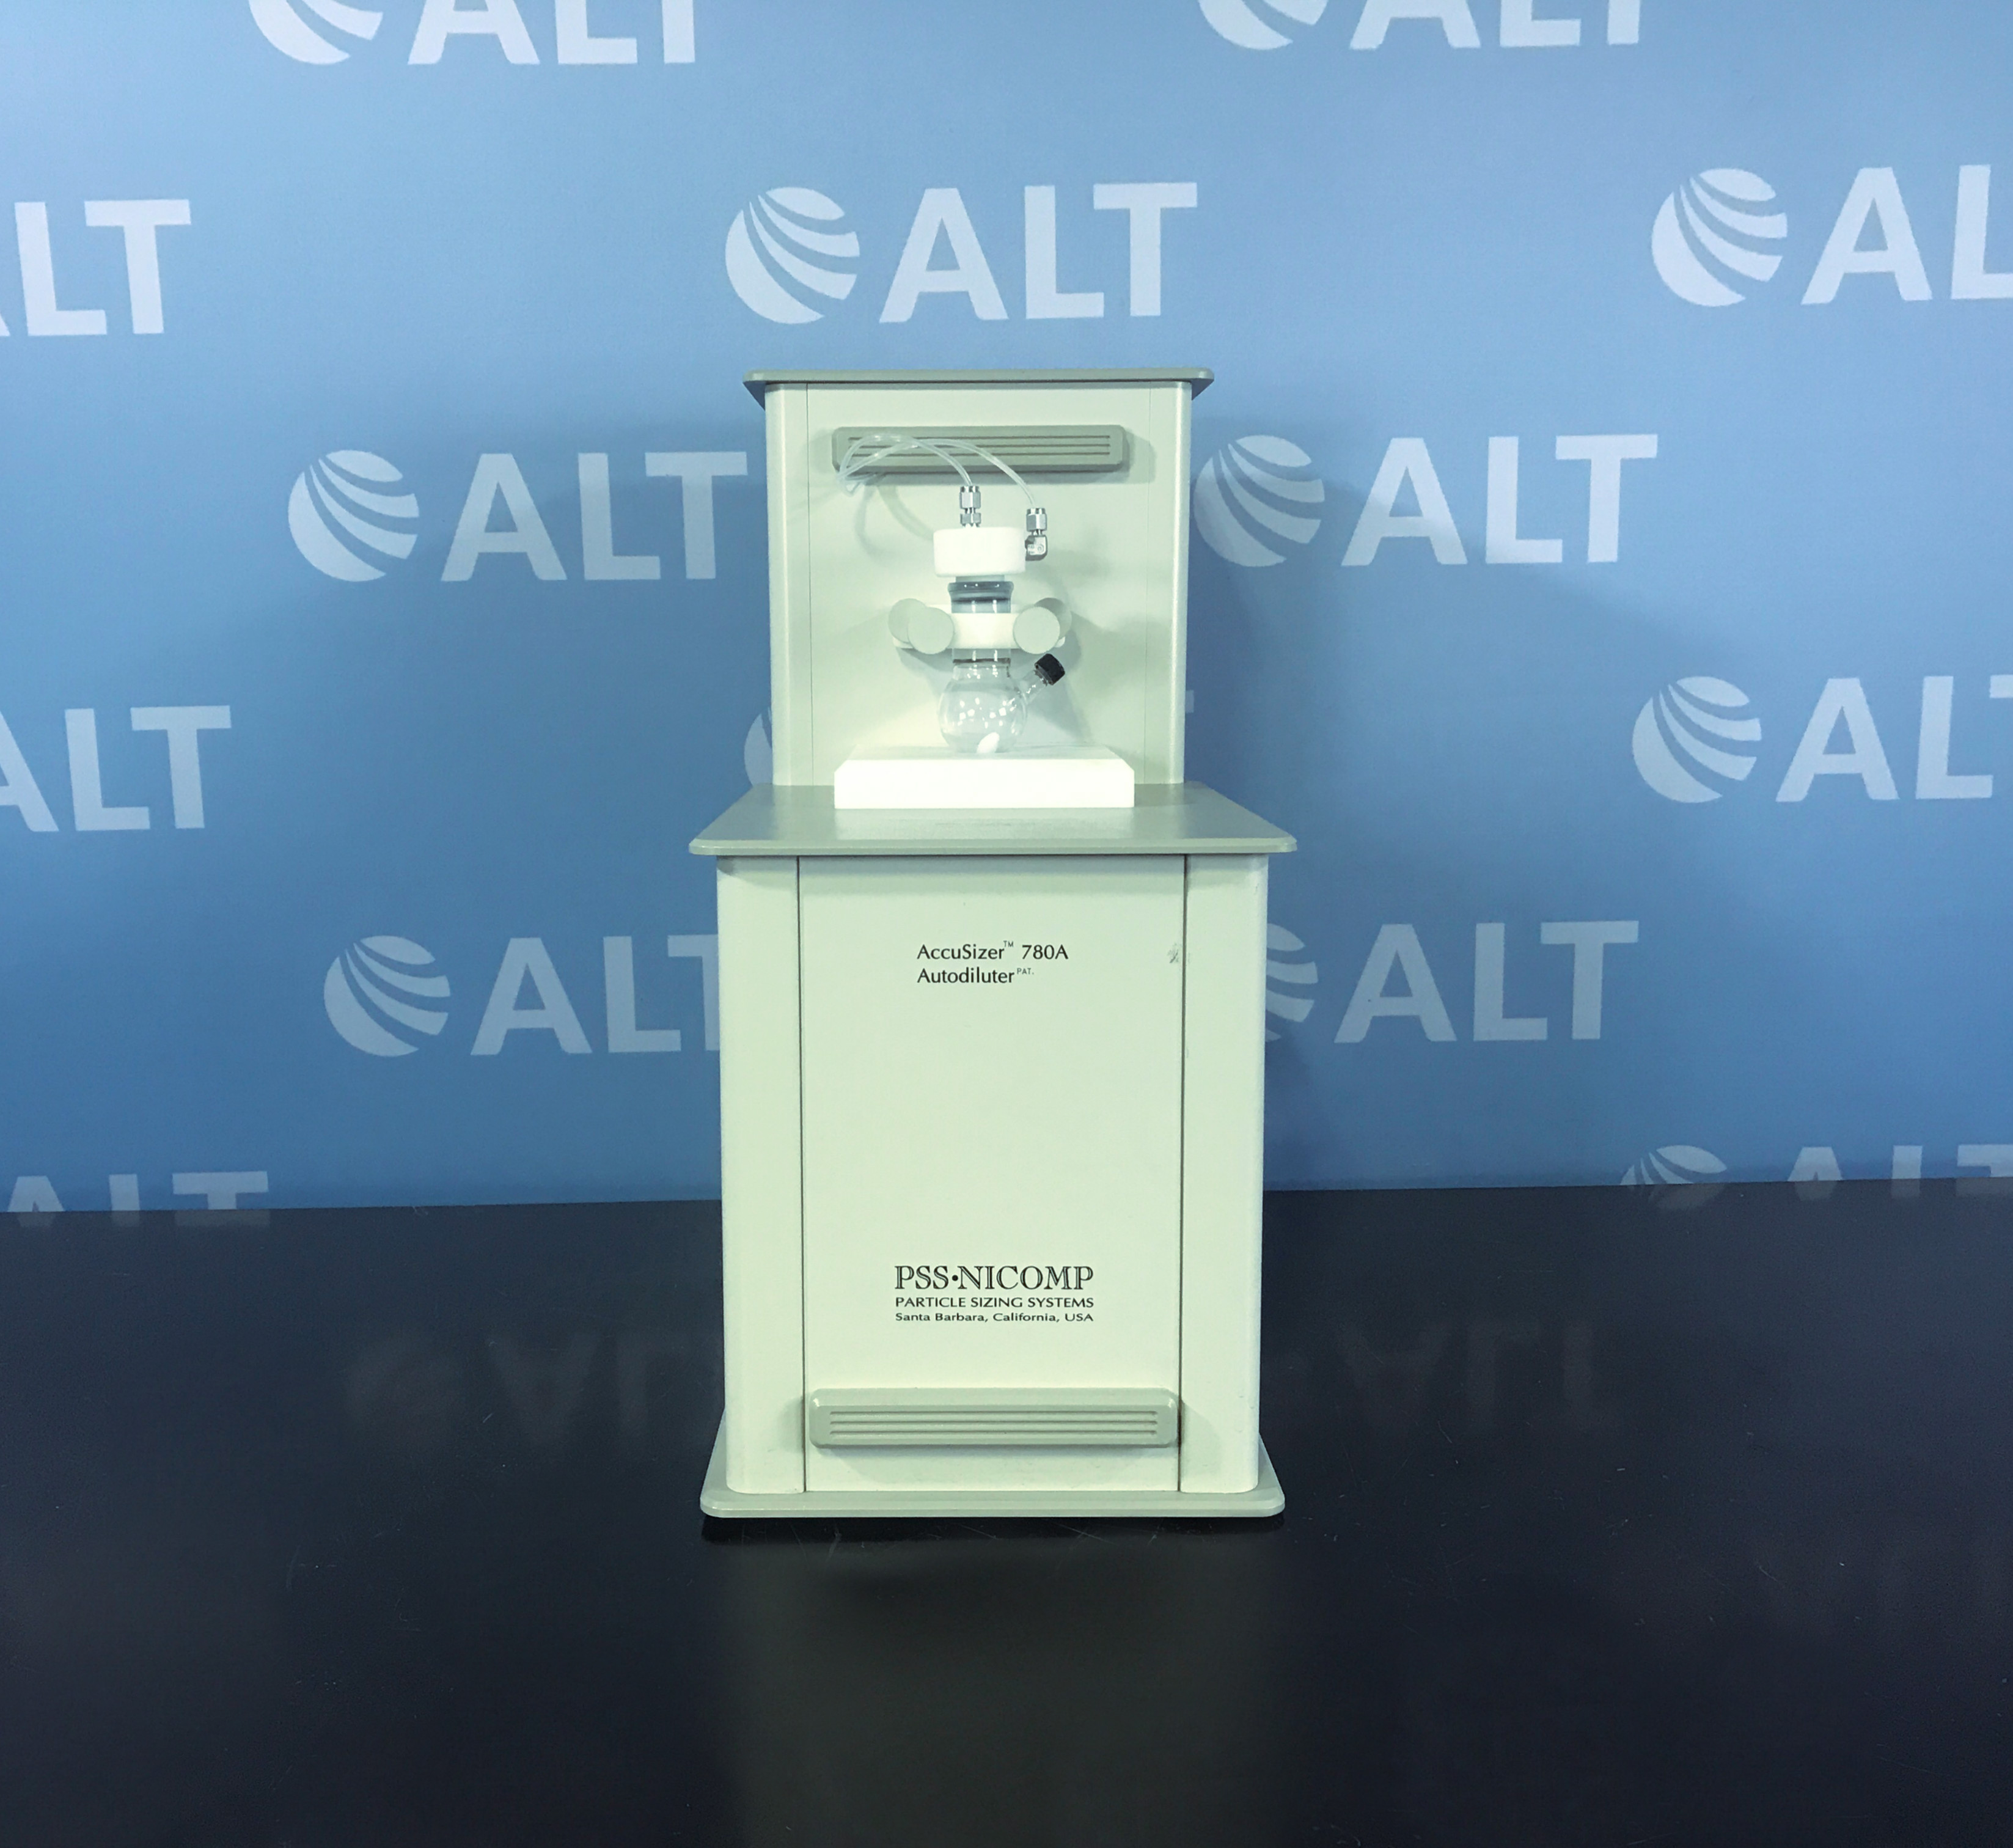 Pss Nicomp Accusizer 780A Autodiluter Partical Sizing System Image